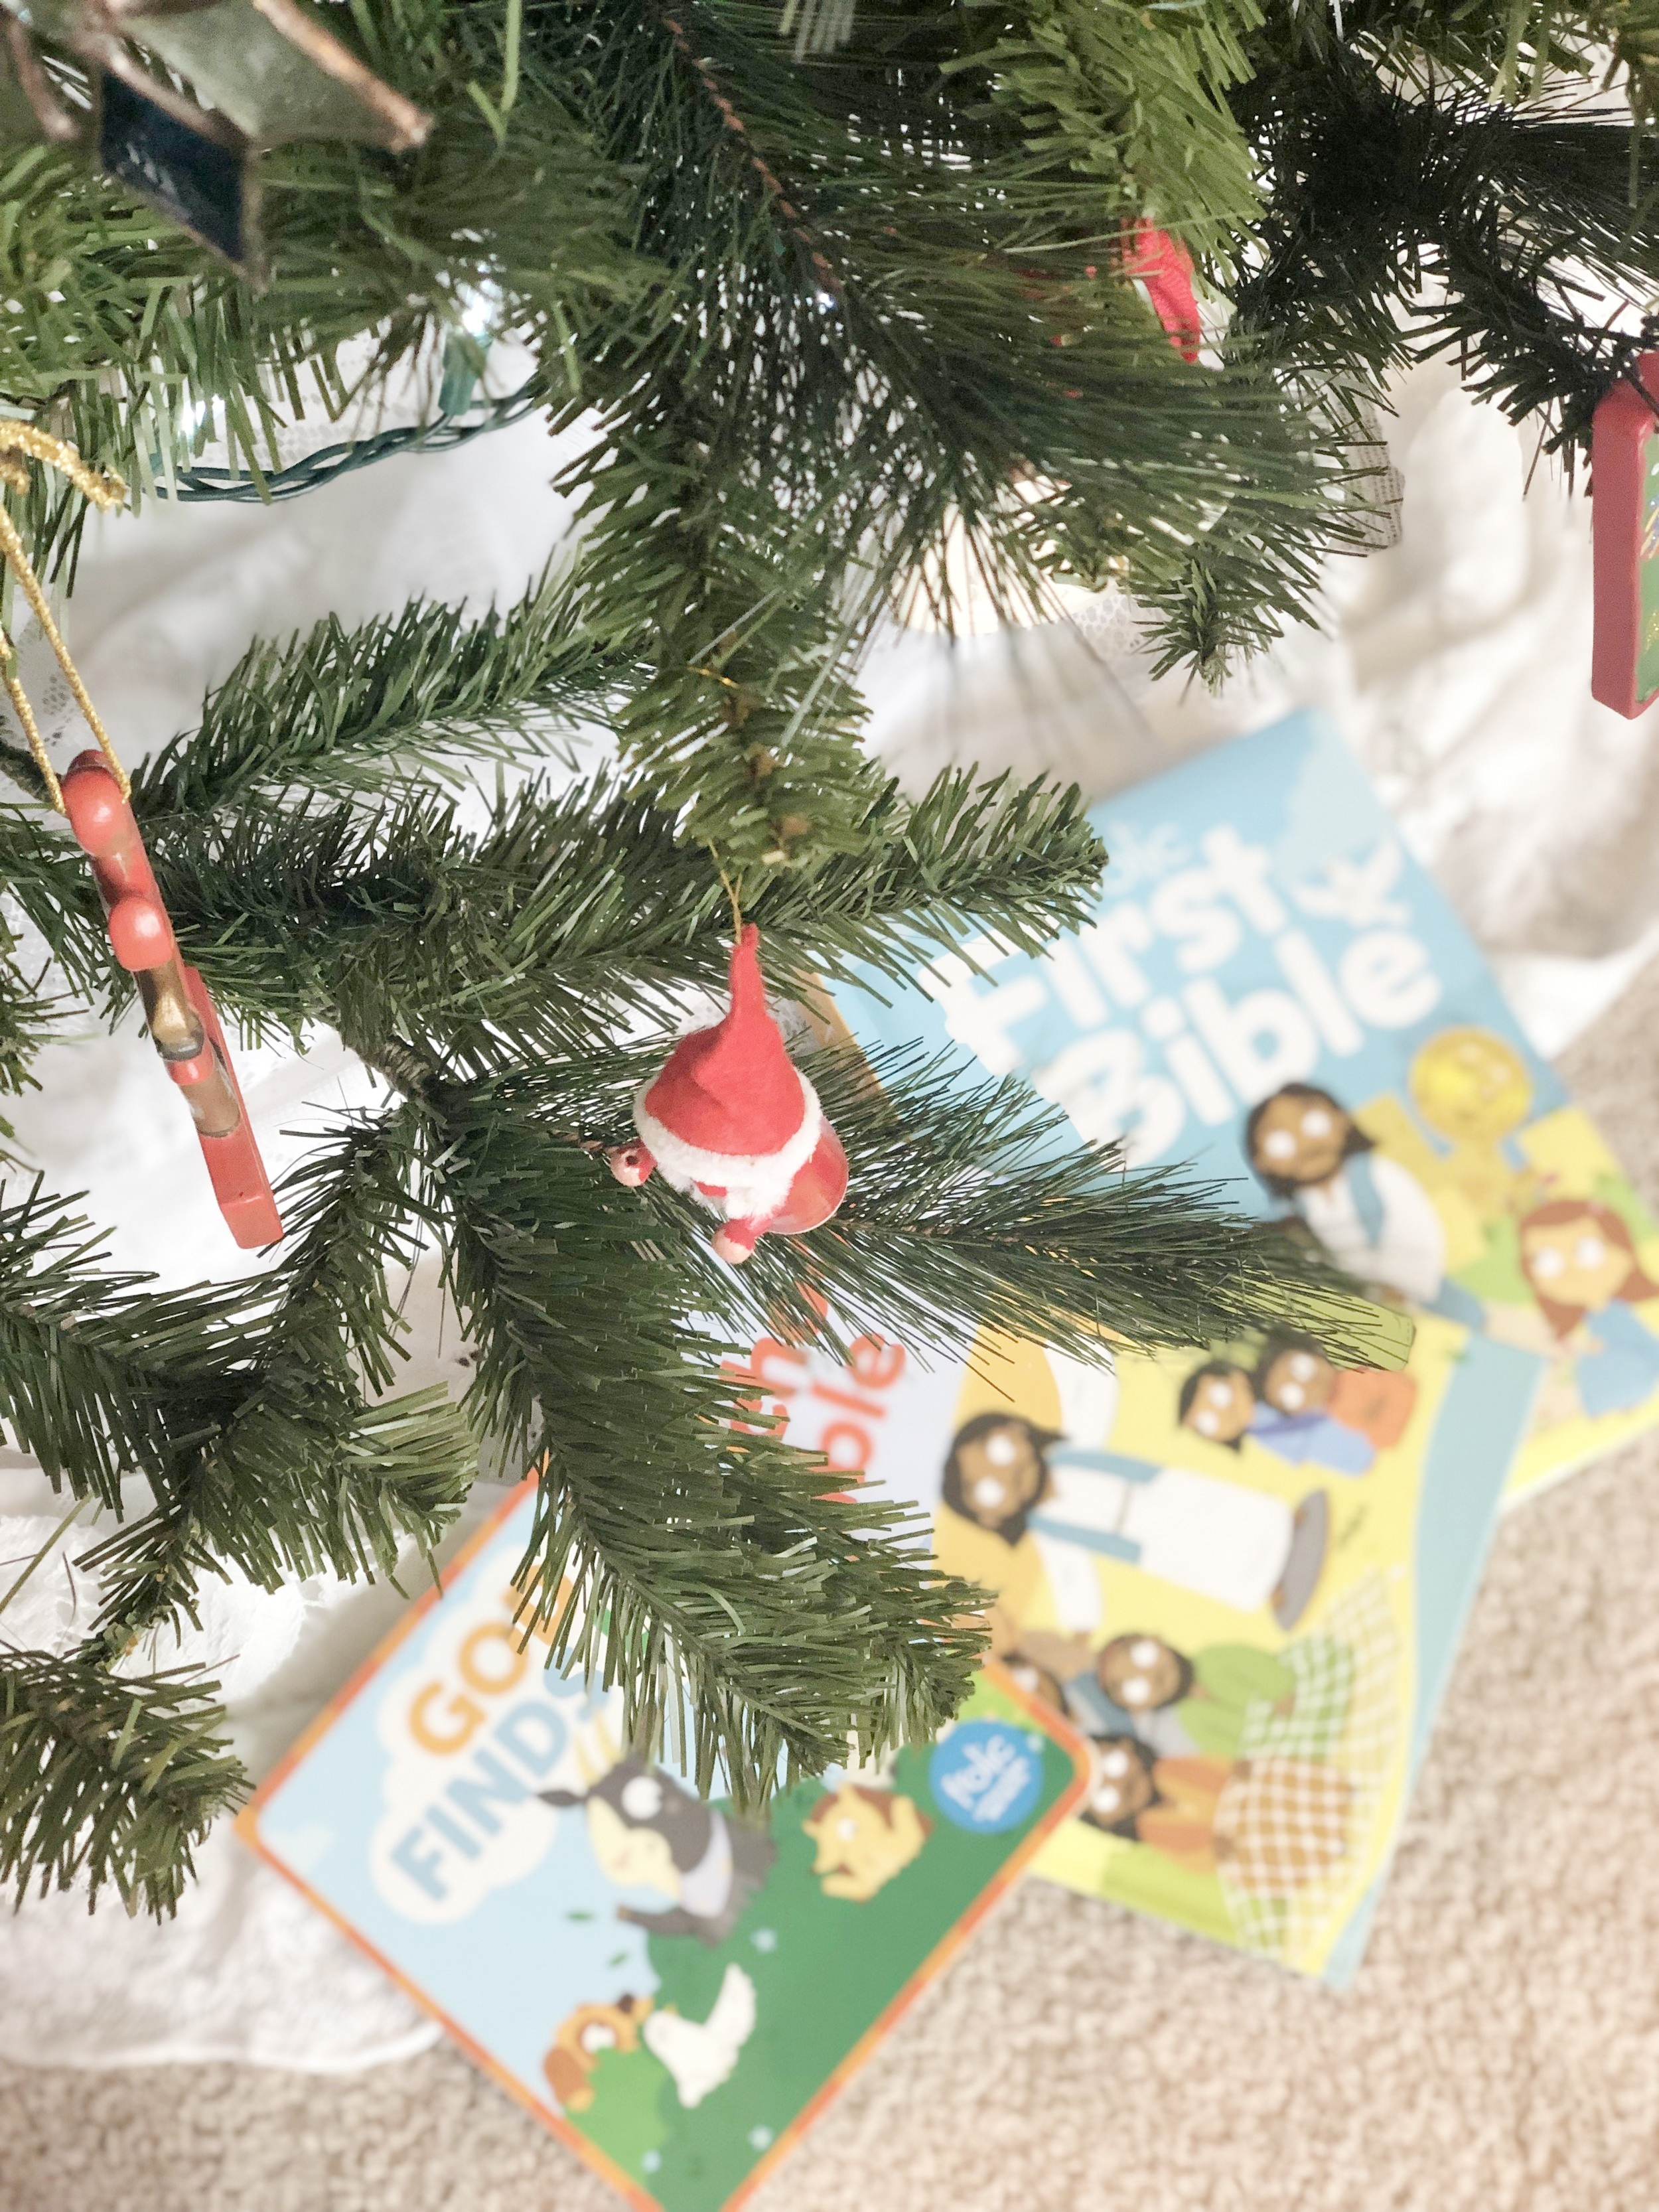 Still looking for gifts to put under the tree? How about wrapping up something meaningful?  Today we're sharing an idea that we think will help build your children's faith for years to come!